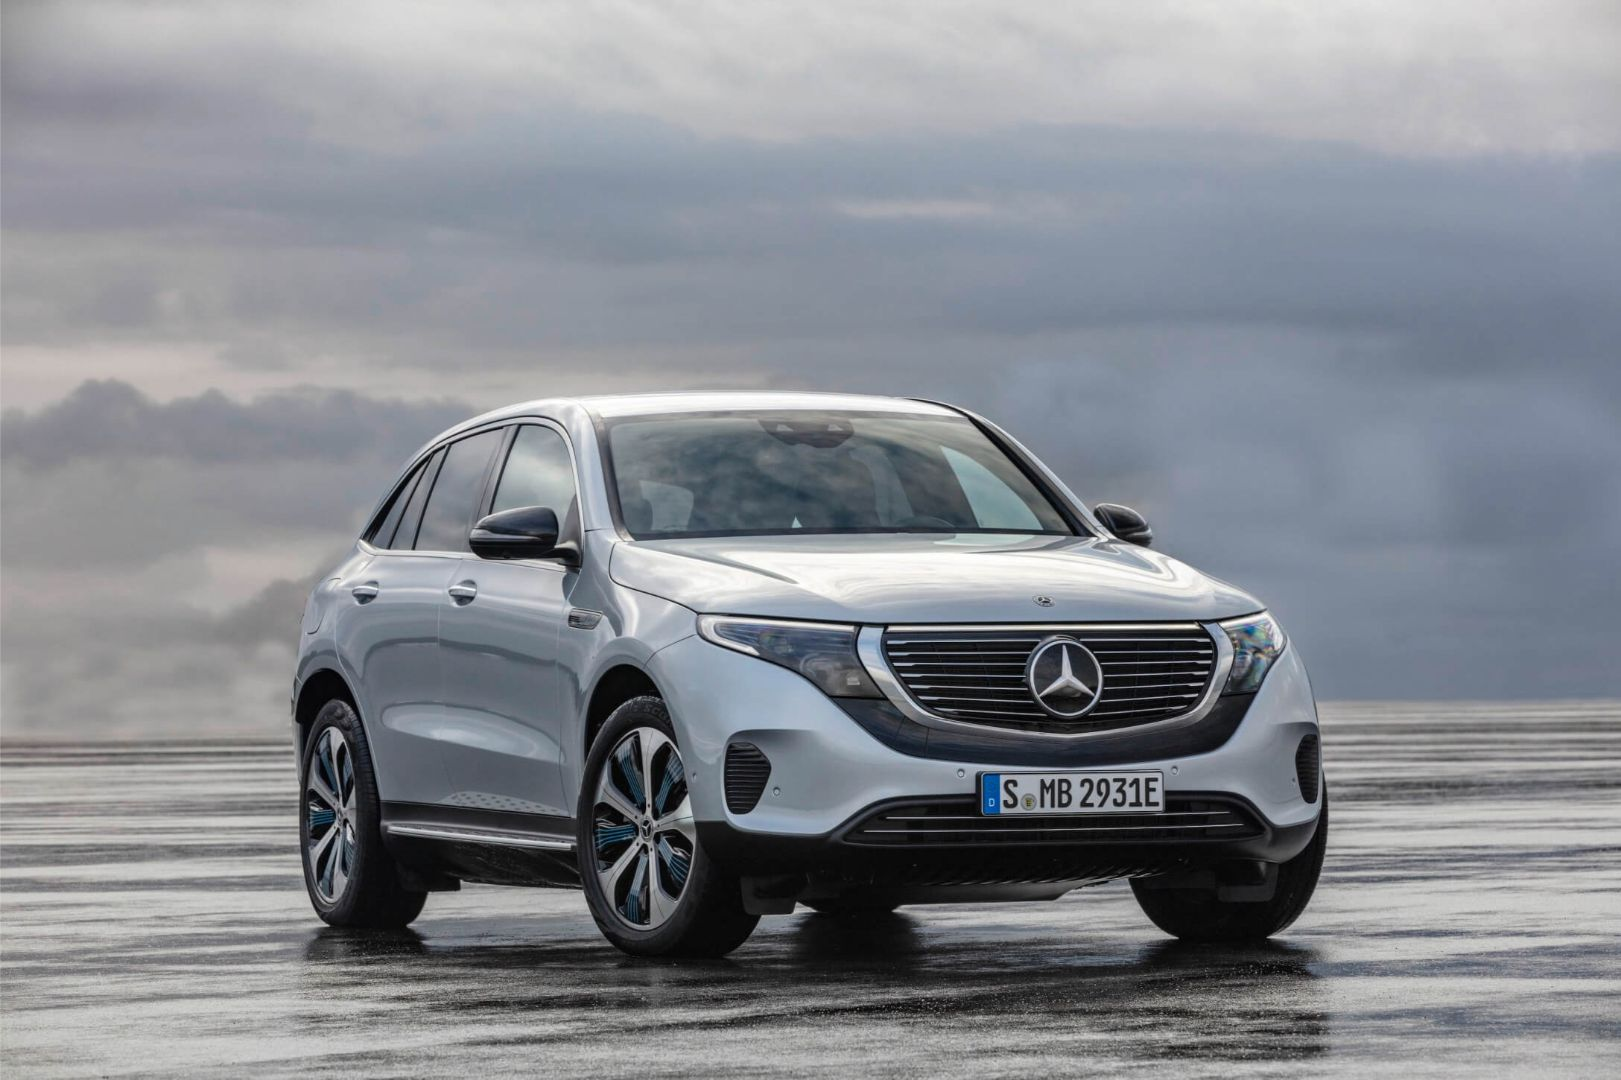 Introducing The All-Electric Mercedes-Benz EQC(1)